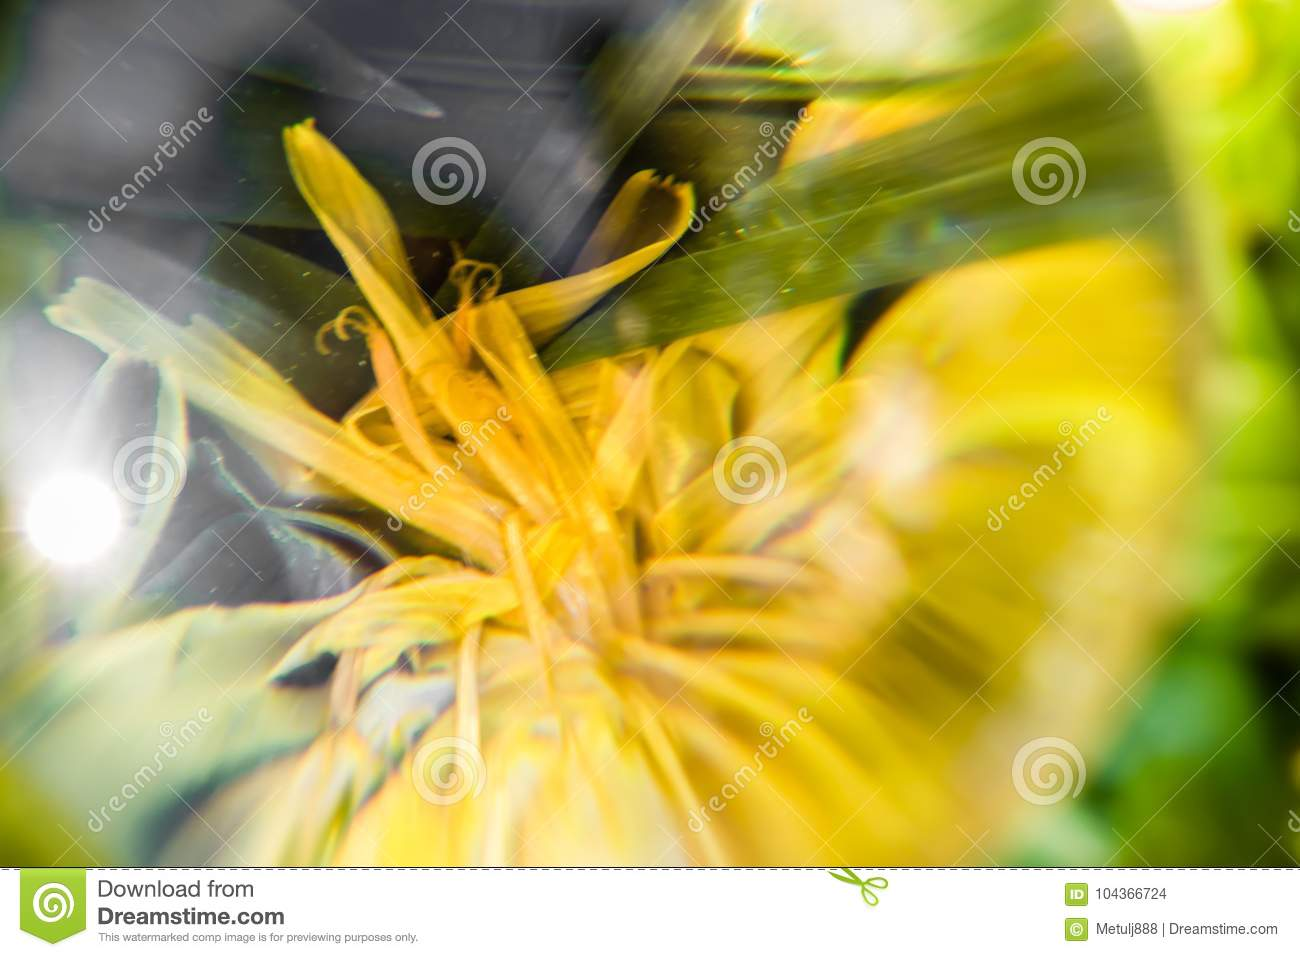 Close Up Macro View Through Lens Ball Of Yellow Flower Petals In